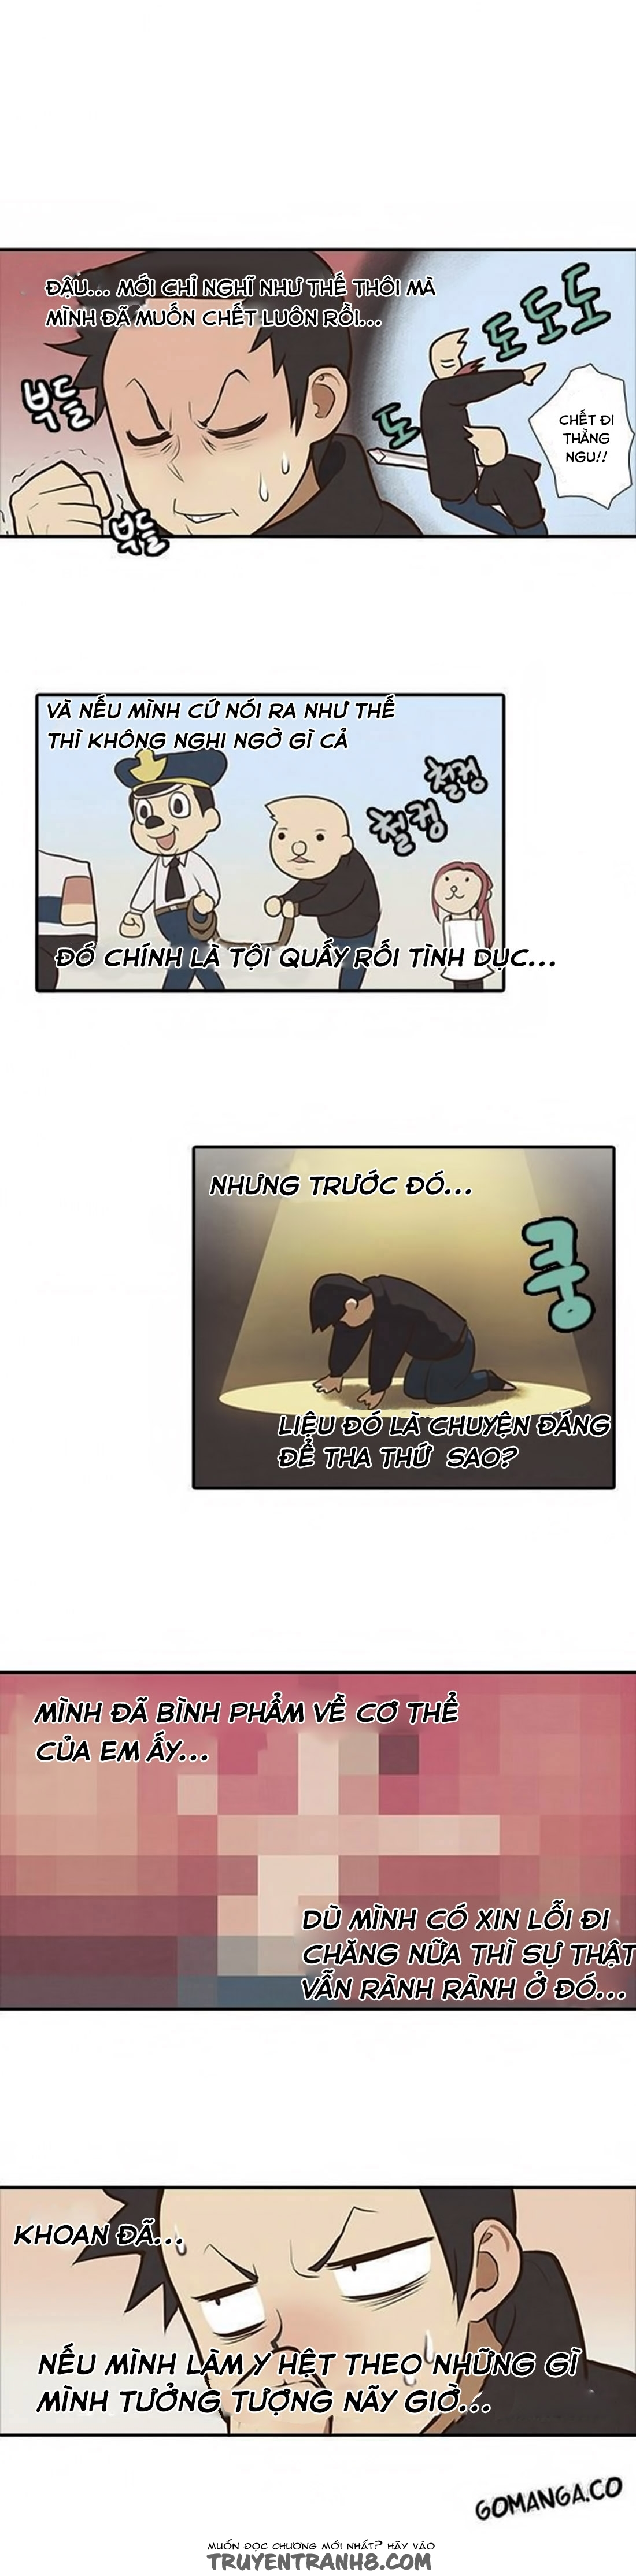 How To Open A Triangular Riceball Chap 9 Trang 15